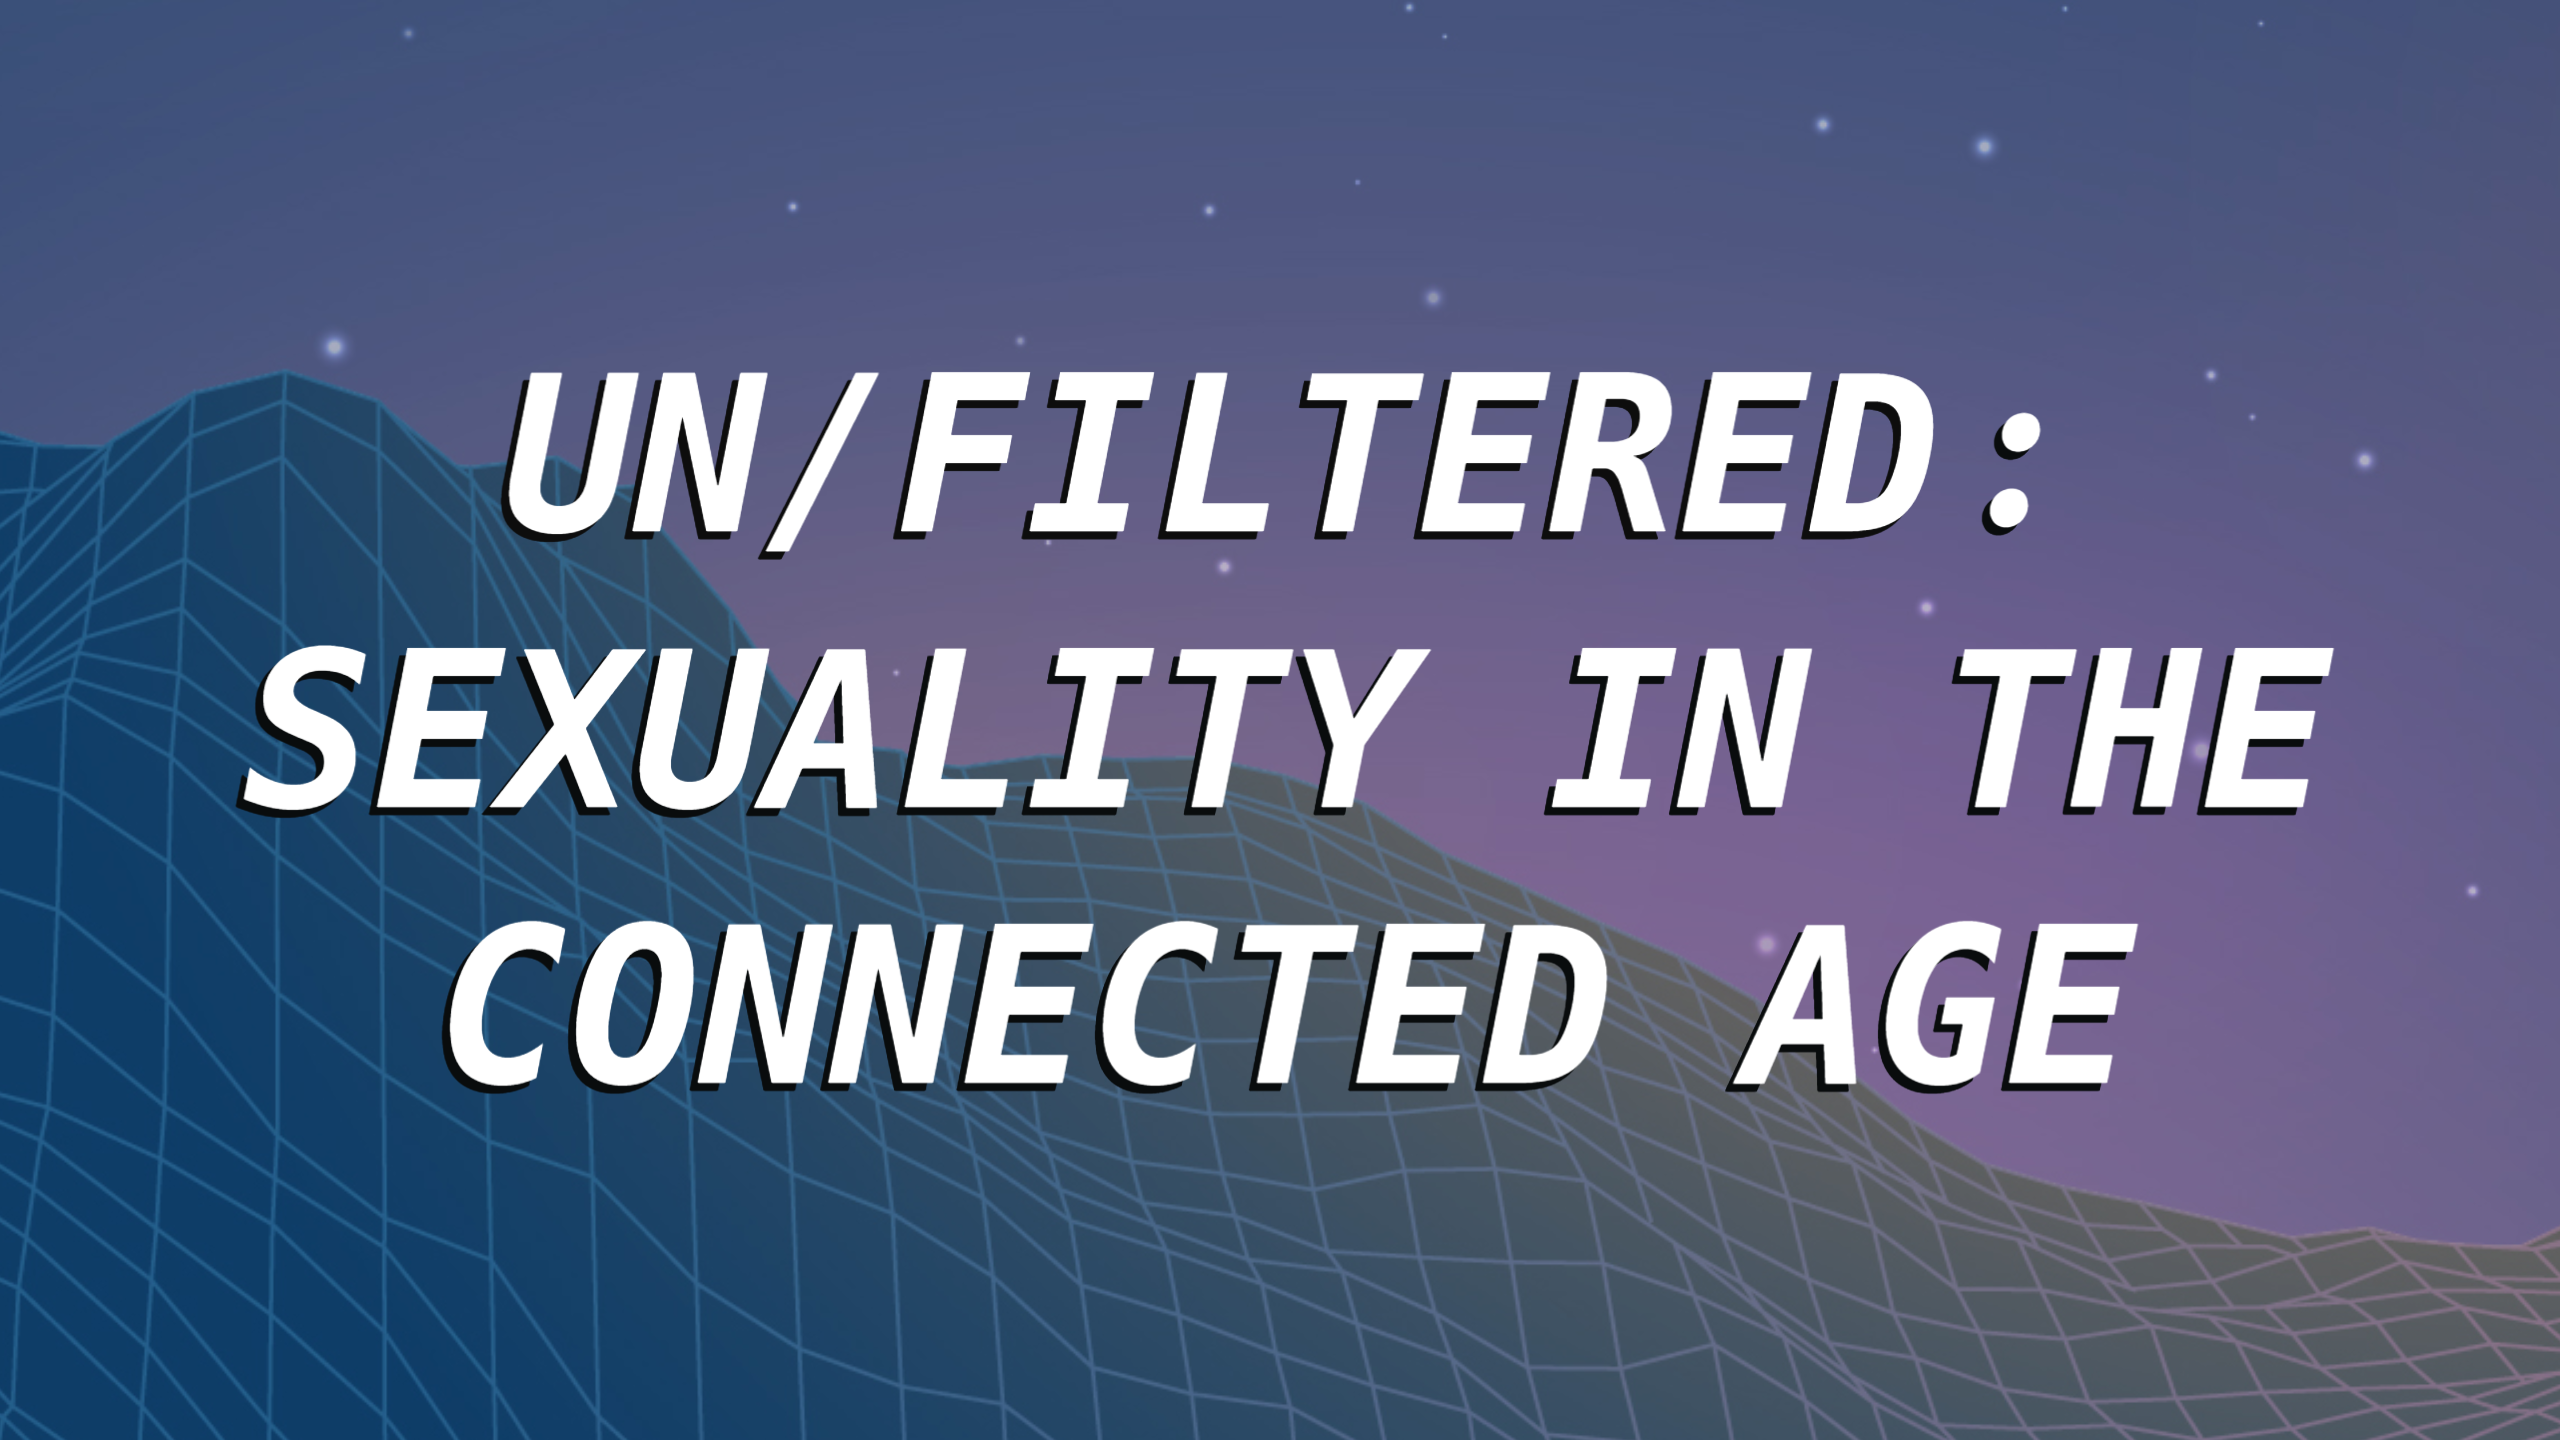 UN/FILTERED: SEXUALITY IN THE CONNECTED AGE